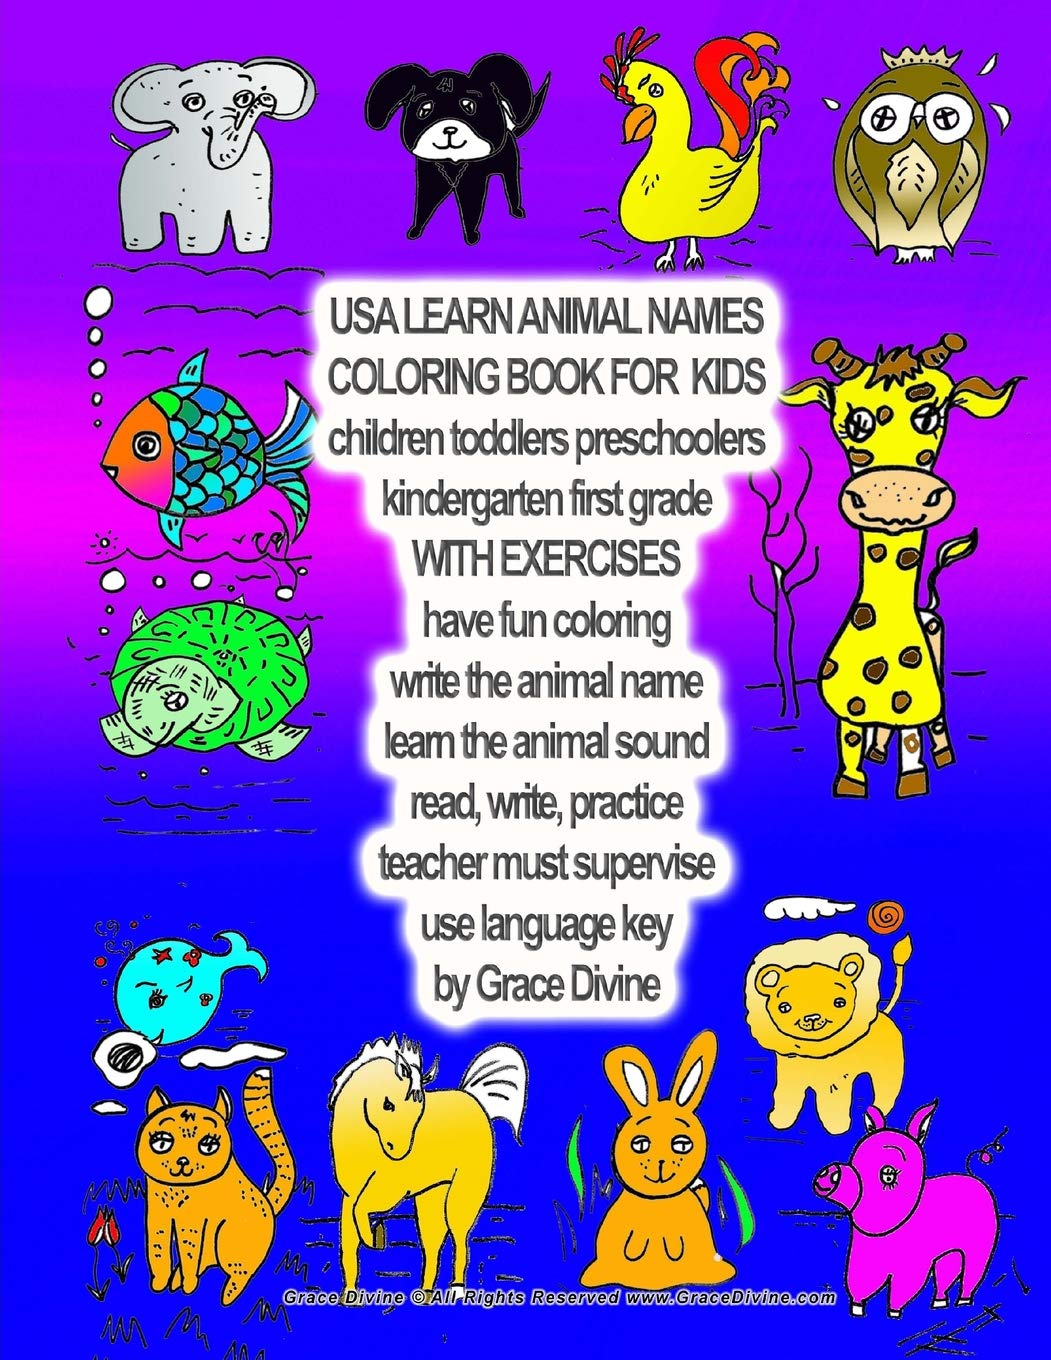 Usa Learn Animal Names Coloring Book For Kids Children Toddlers Preschoolers Kindergarted First Grade With Exercises Have Fun Coloring Write The Teacher Must Supervise Use Language Key Divine Grace 9781724572974 Amazon Com